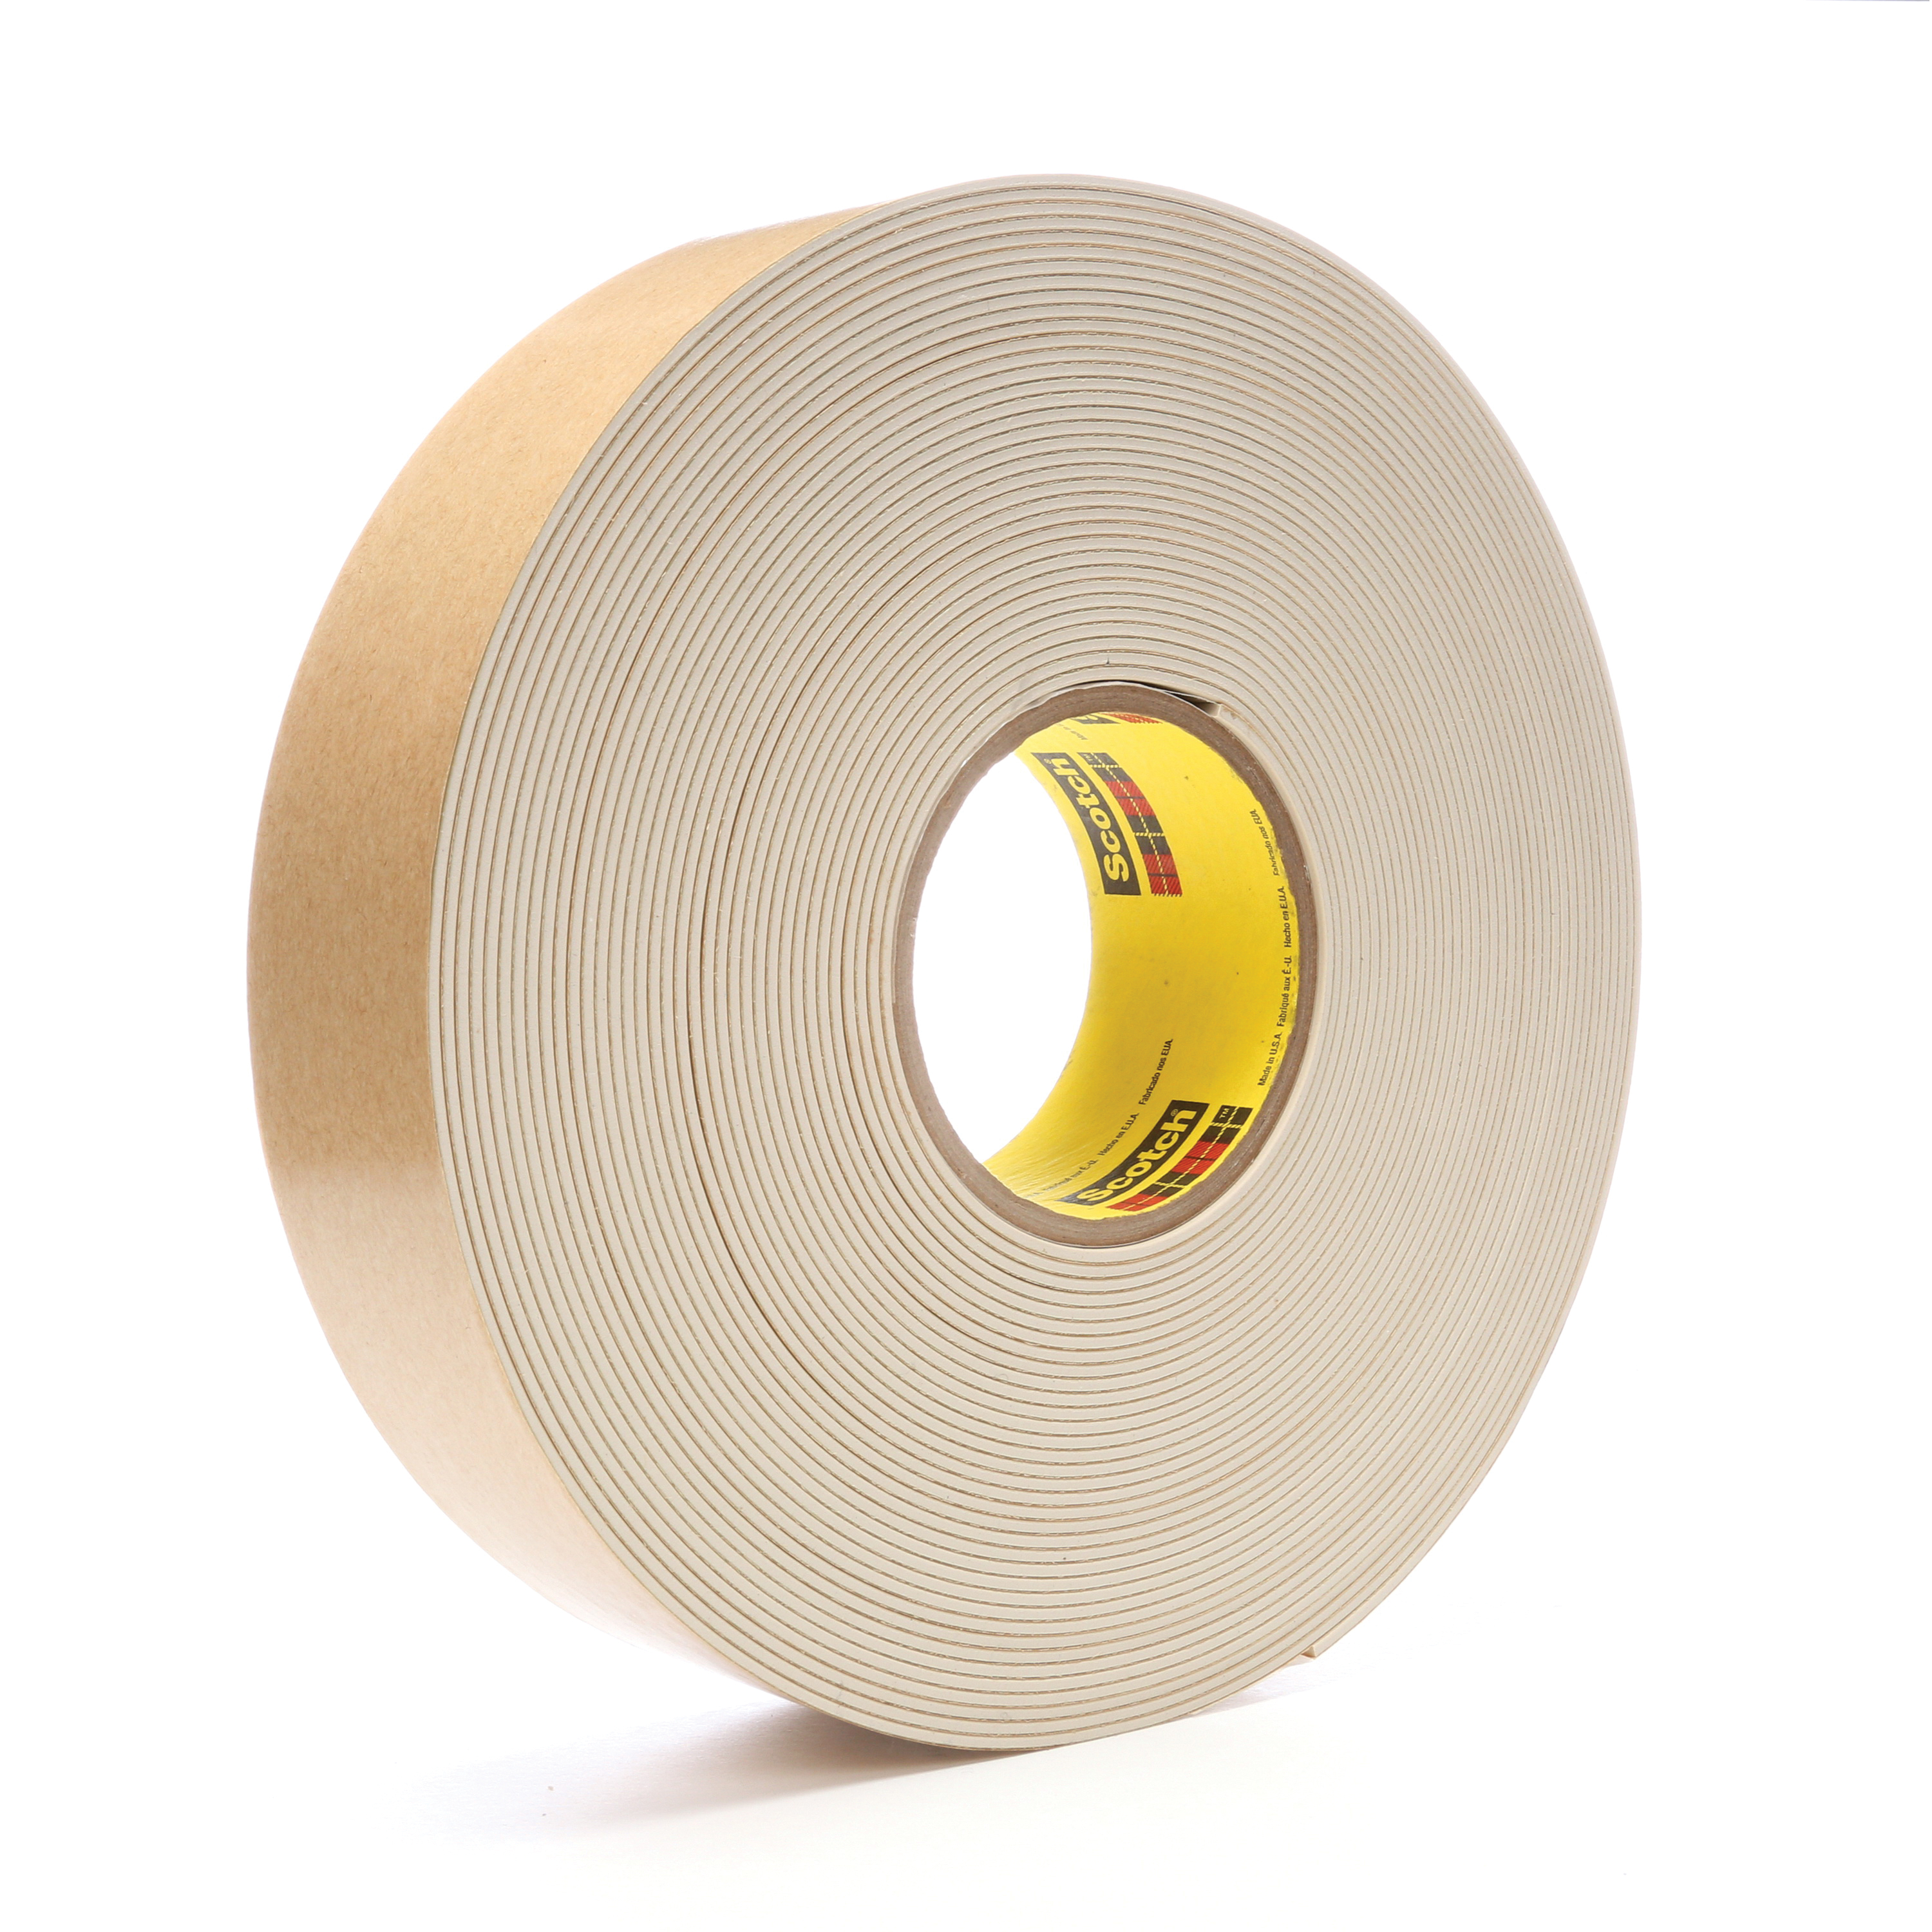 3M™ 021200-45335 Impact Stripping Tape, 20 yd L x 2 in W, 82 mil THK, Acrylic Adhesive, Rubber Backing